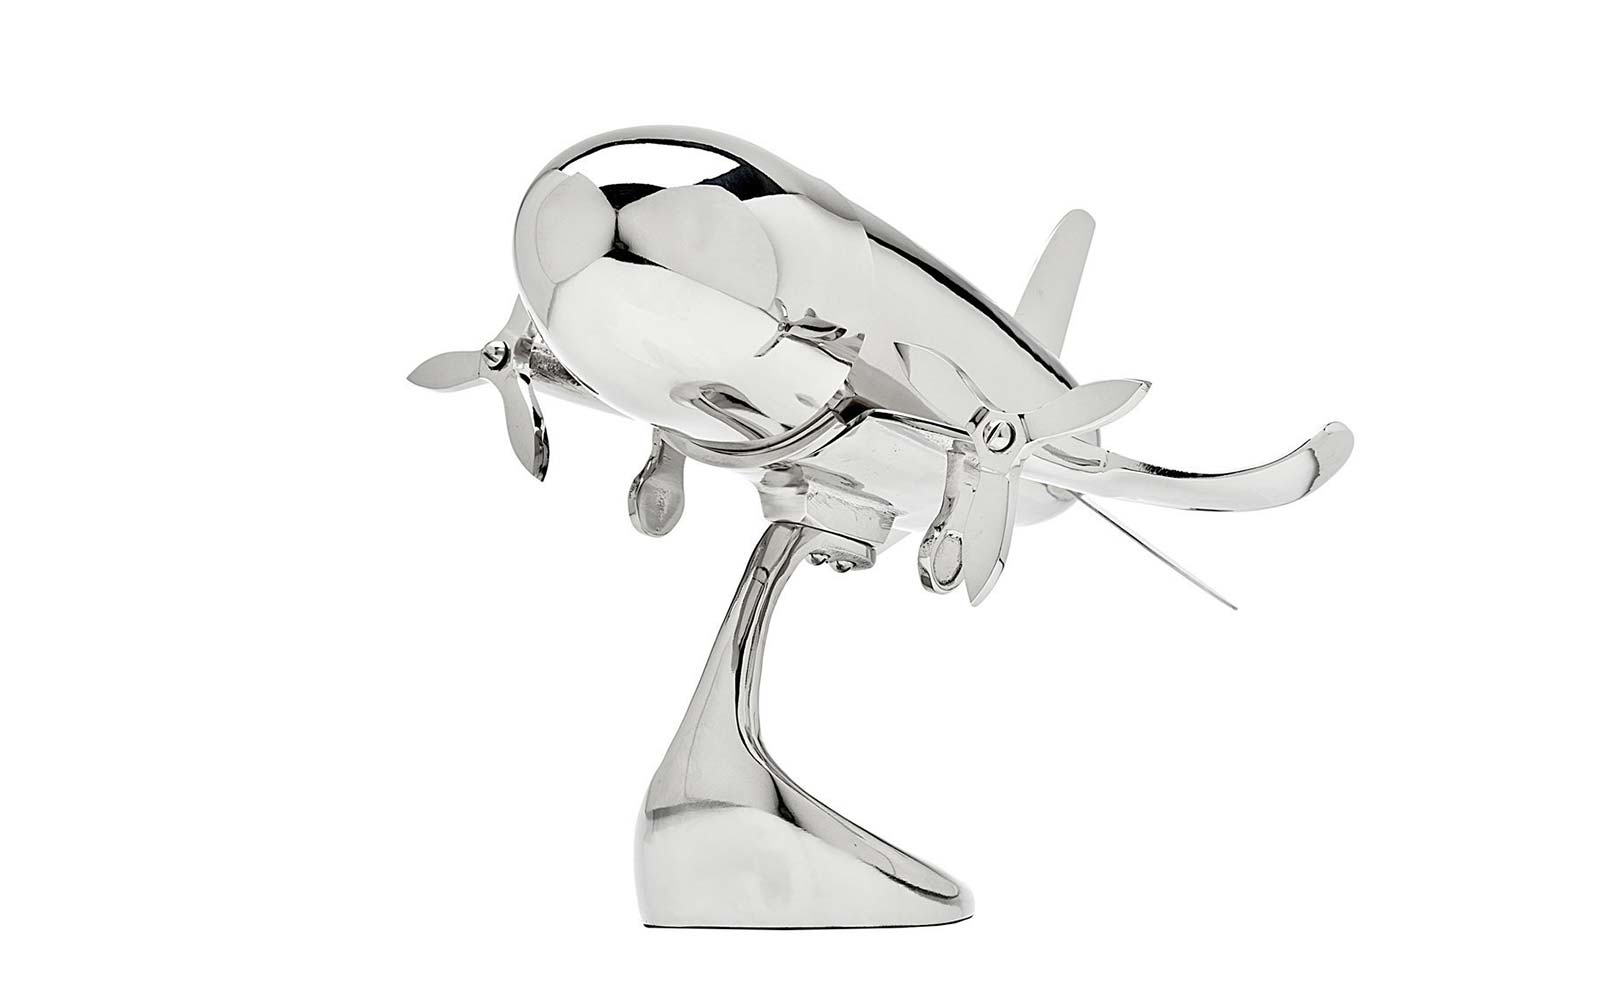 stainless steel airplane cocktail shaker